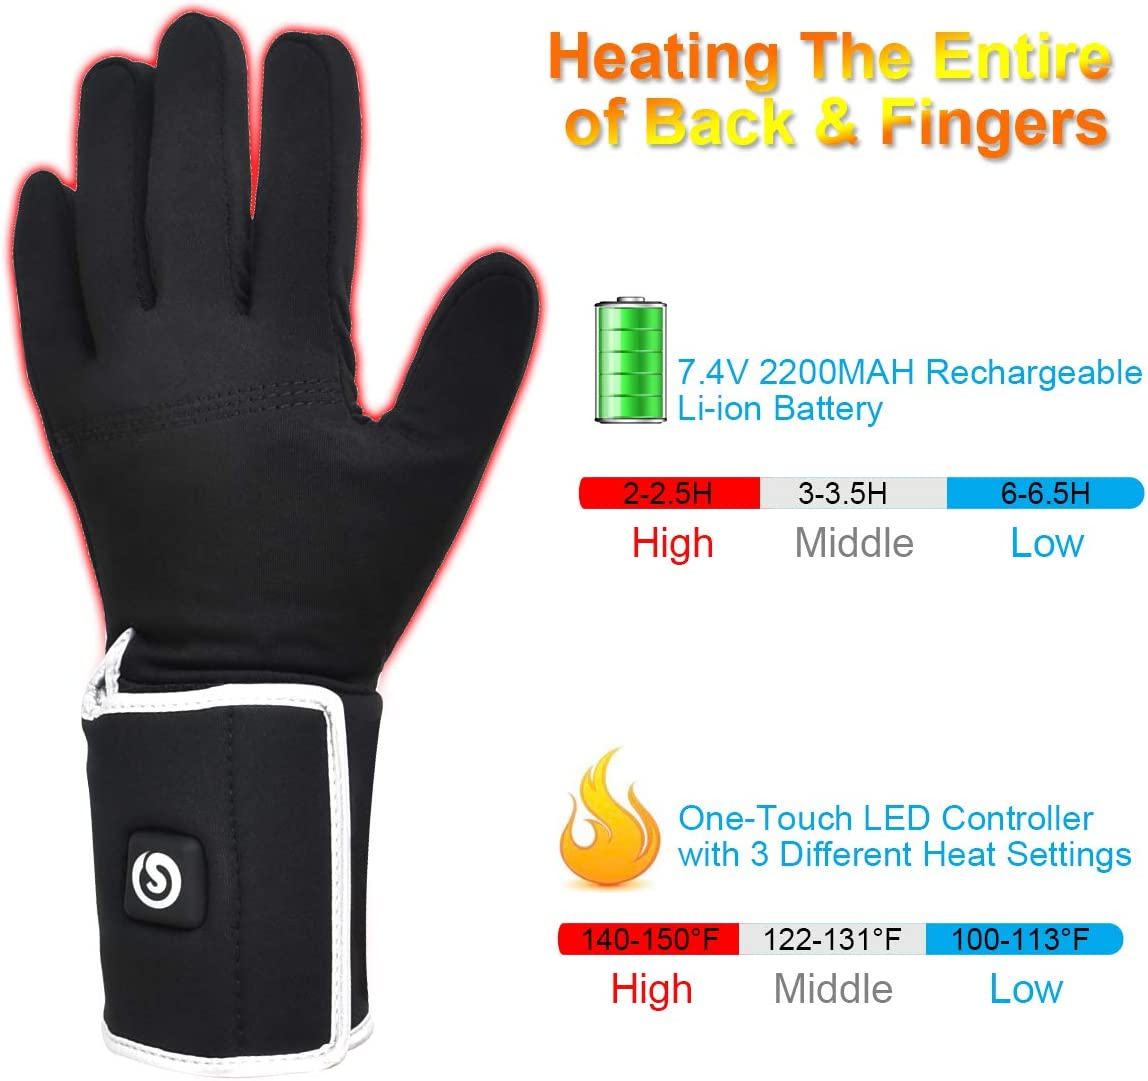 SNOW DEER Heated Glove Liner for Men and Women with Rechargable Battery for Outdoor Cycling Montorcycle Camping Hiking Skiing,Hand Warmer Heat Up to 2.5-6H